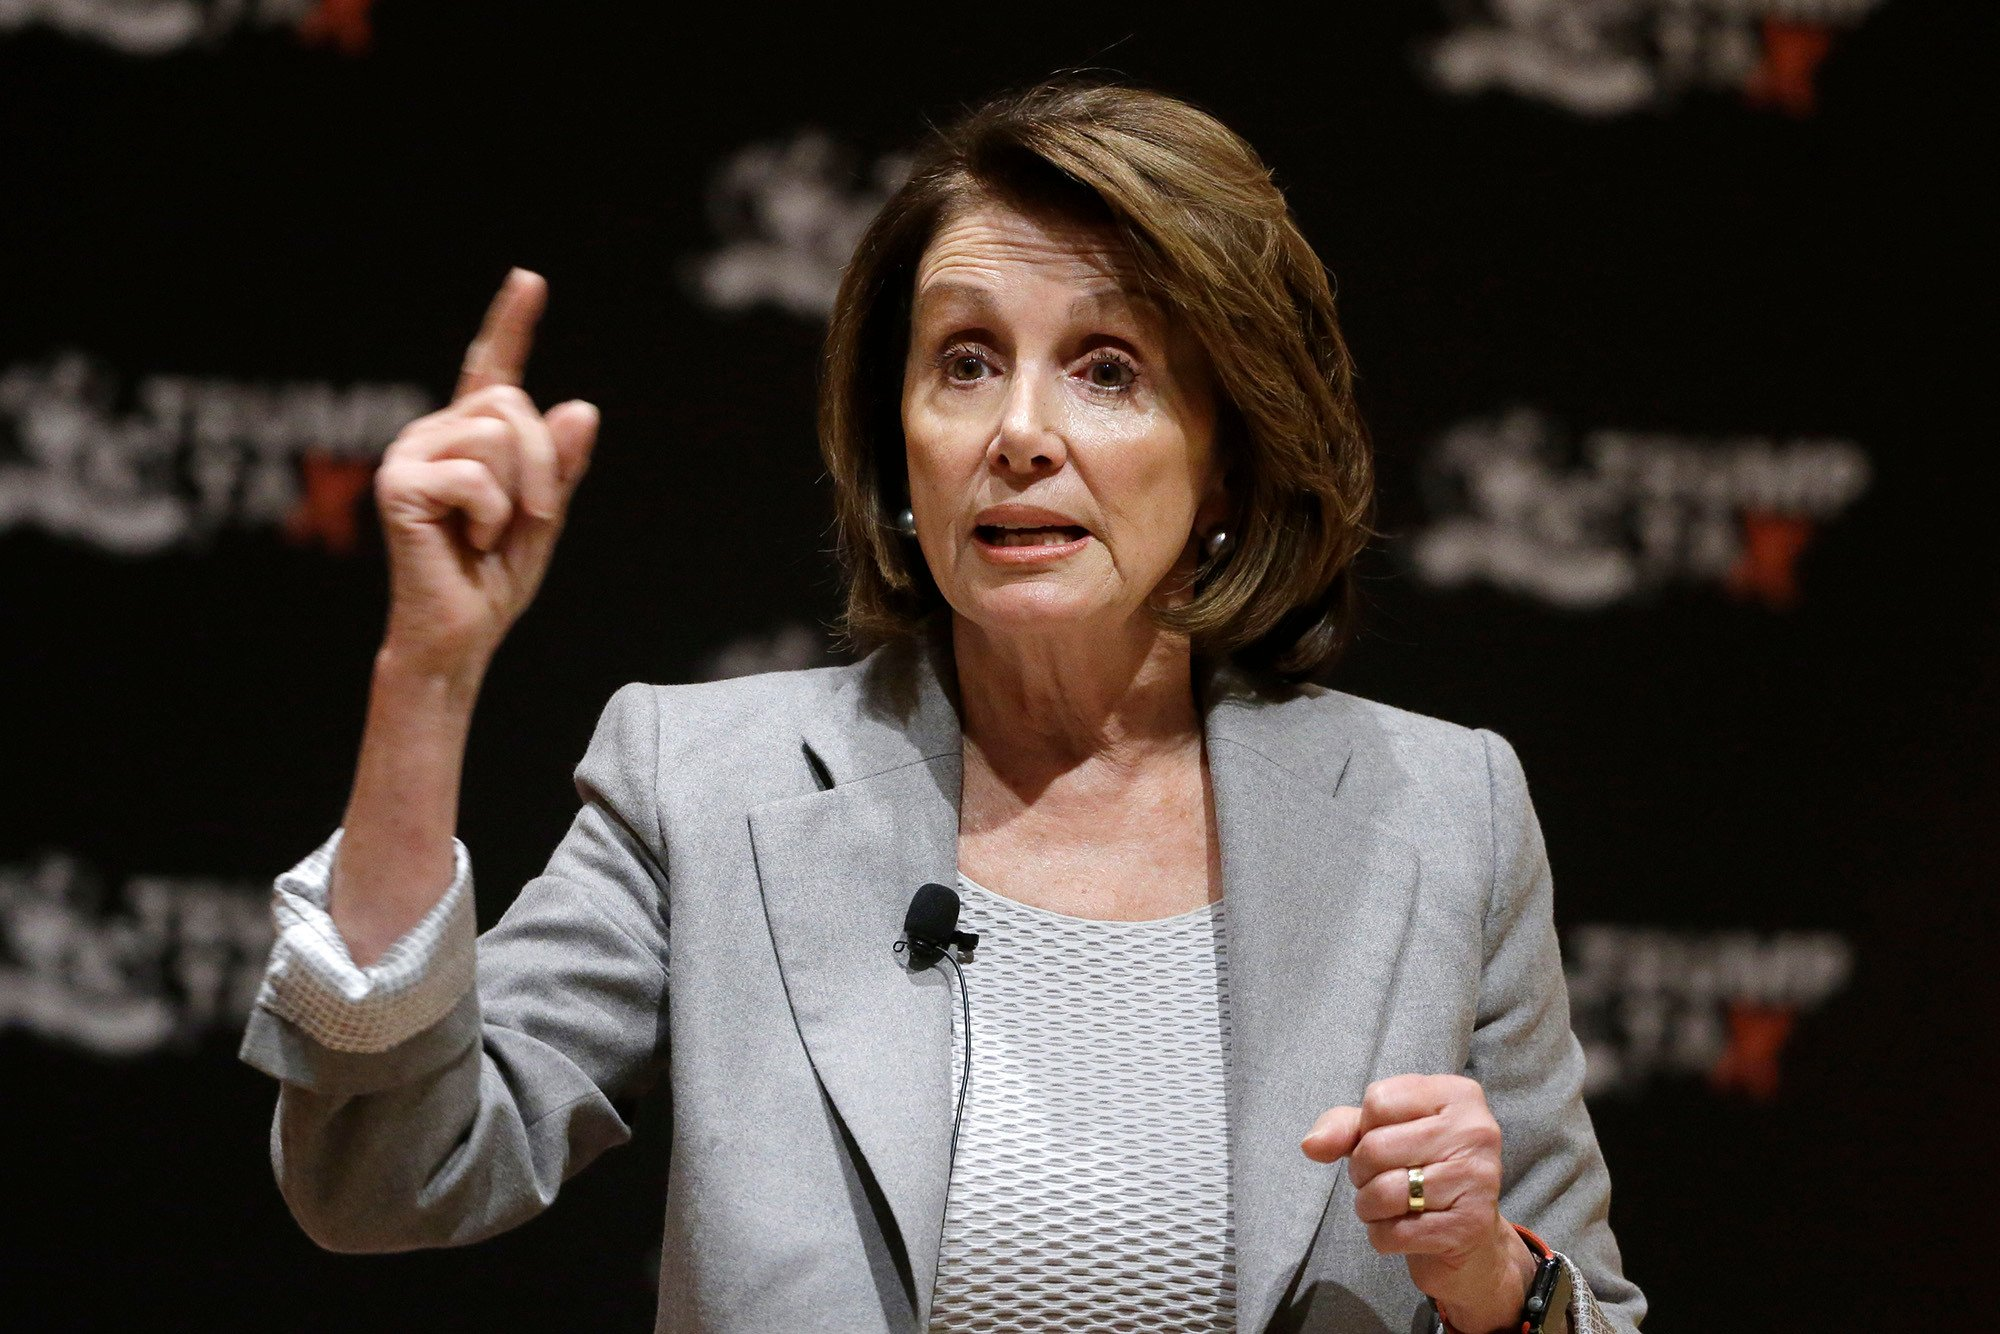 Pelosi won't support budget deal without Dreamer protections